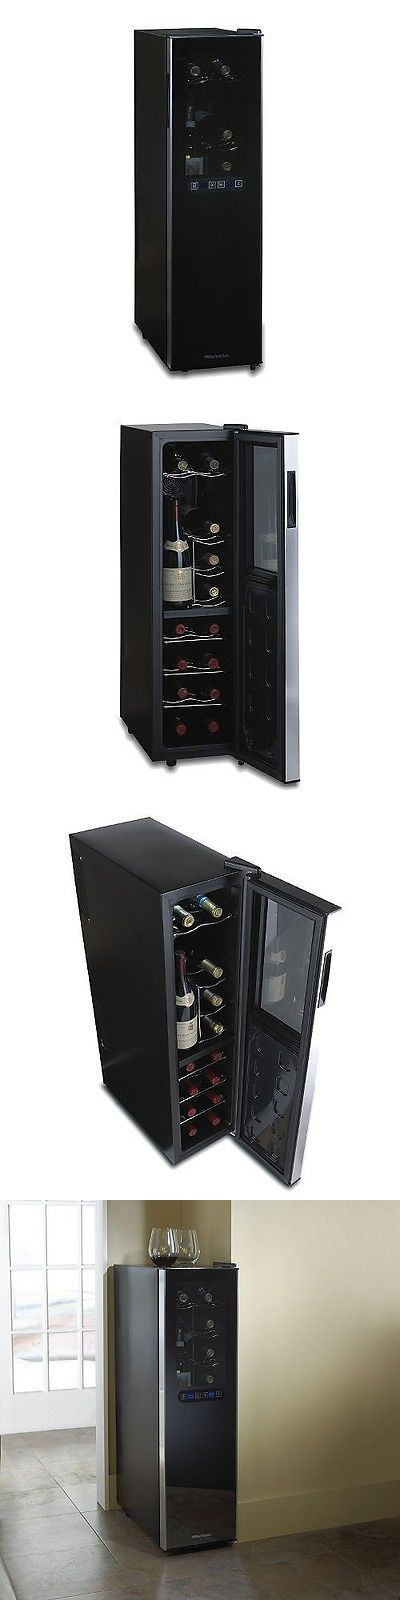 Other Food and Beverages 79631: Wine Enthusiast Silent 18-Bottle Dual-Zone Slimline Wine Refrigerator -> BUY IT NOW ONLY: $229.78 on eBay!